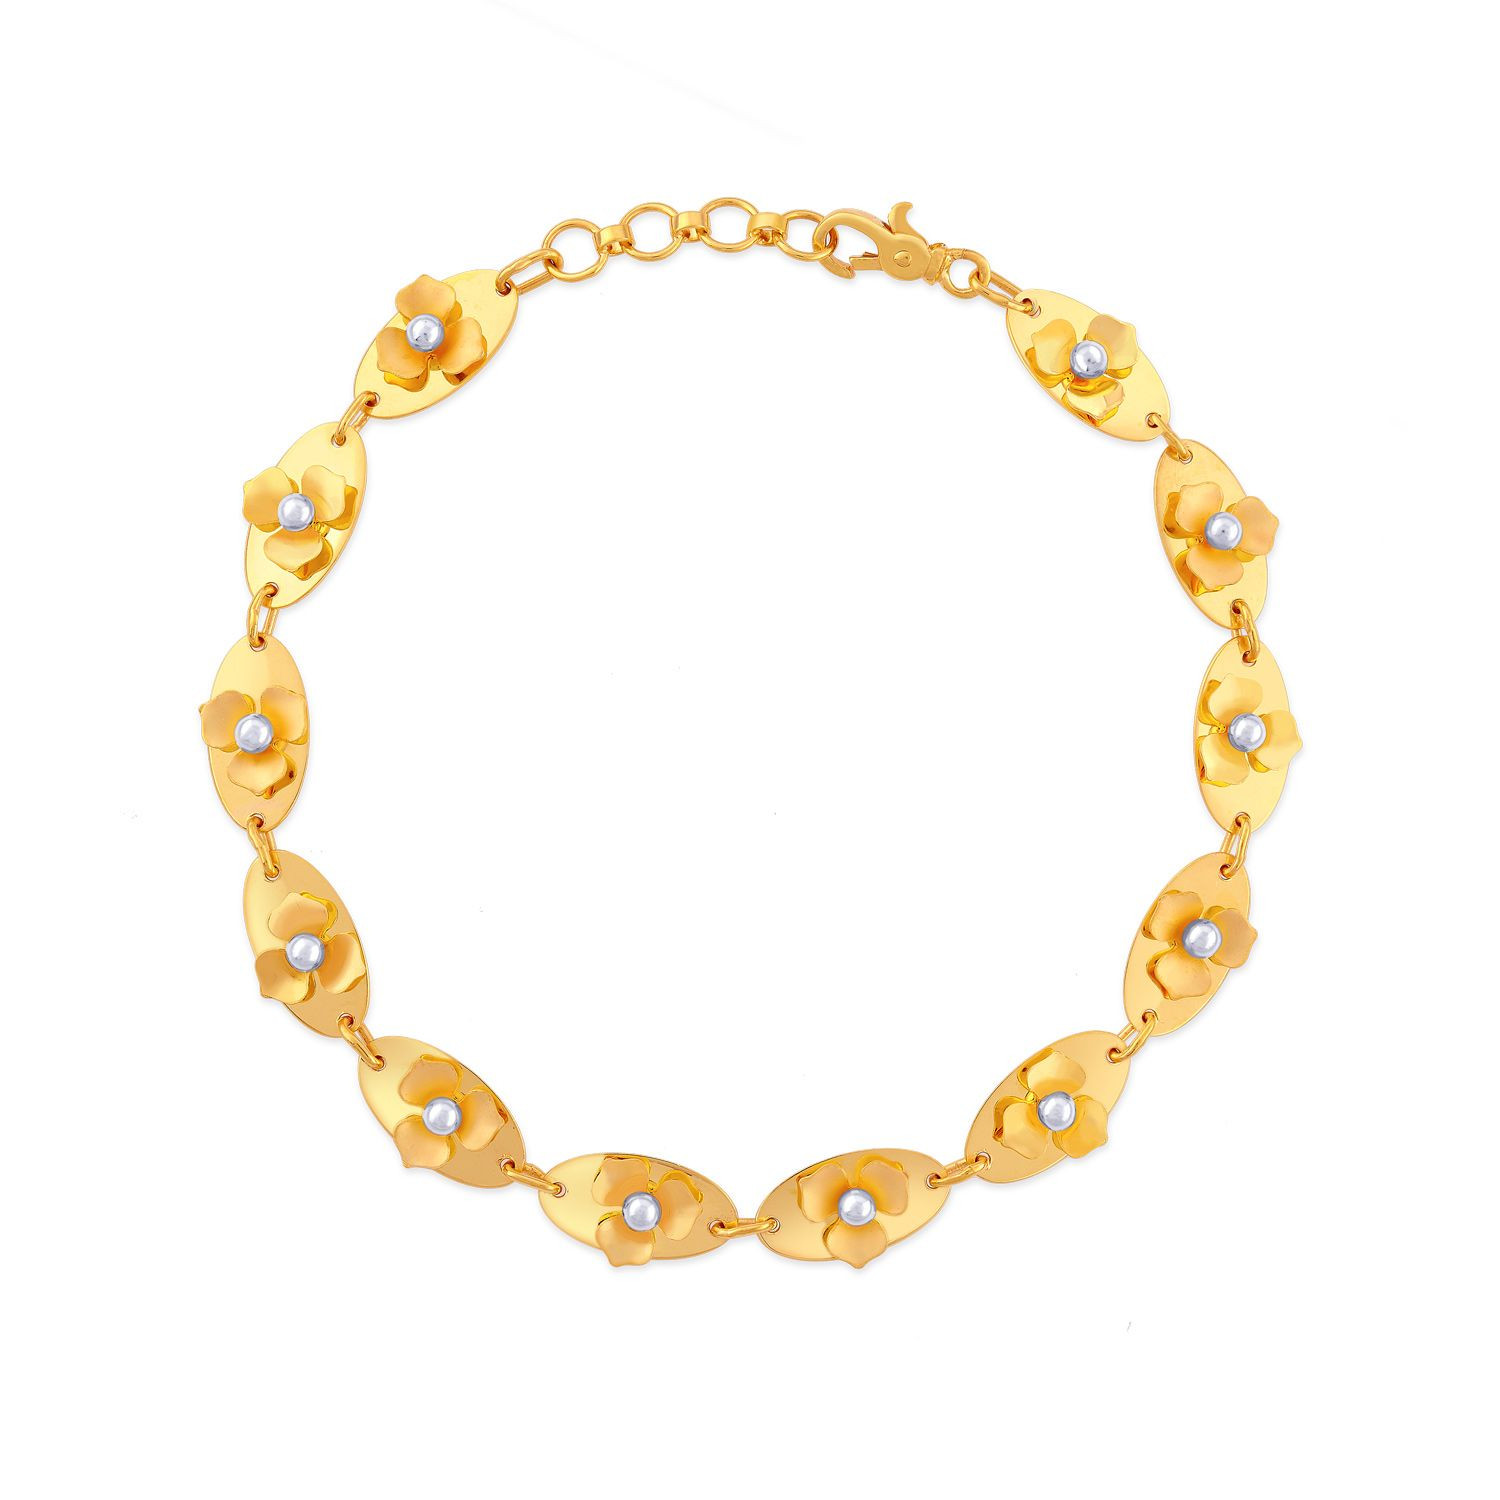 buy malabar gold bracelet brjwaea438 for women online